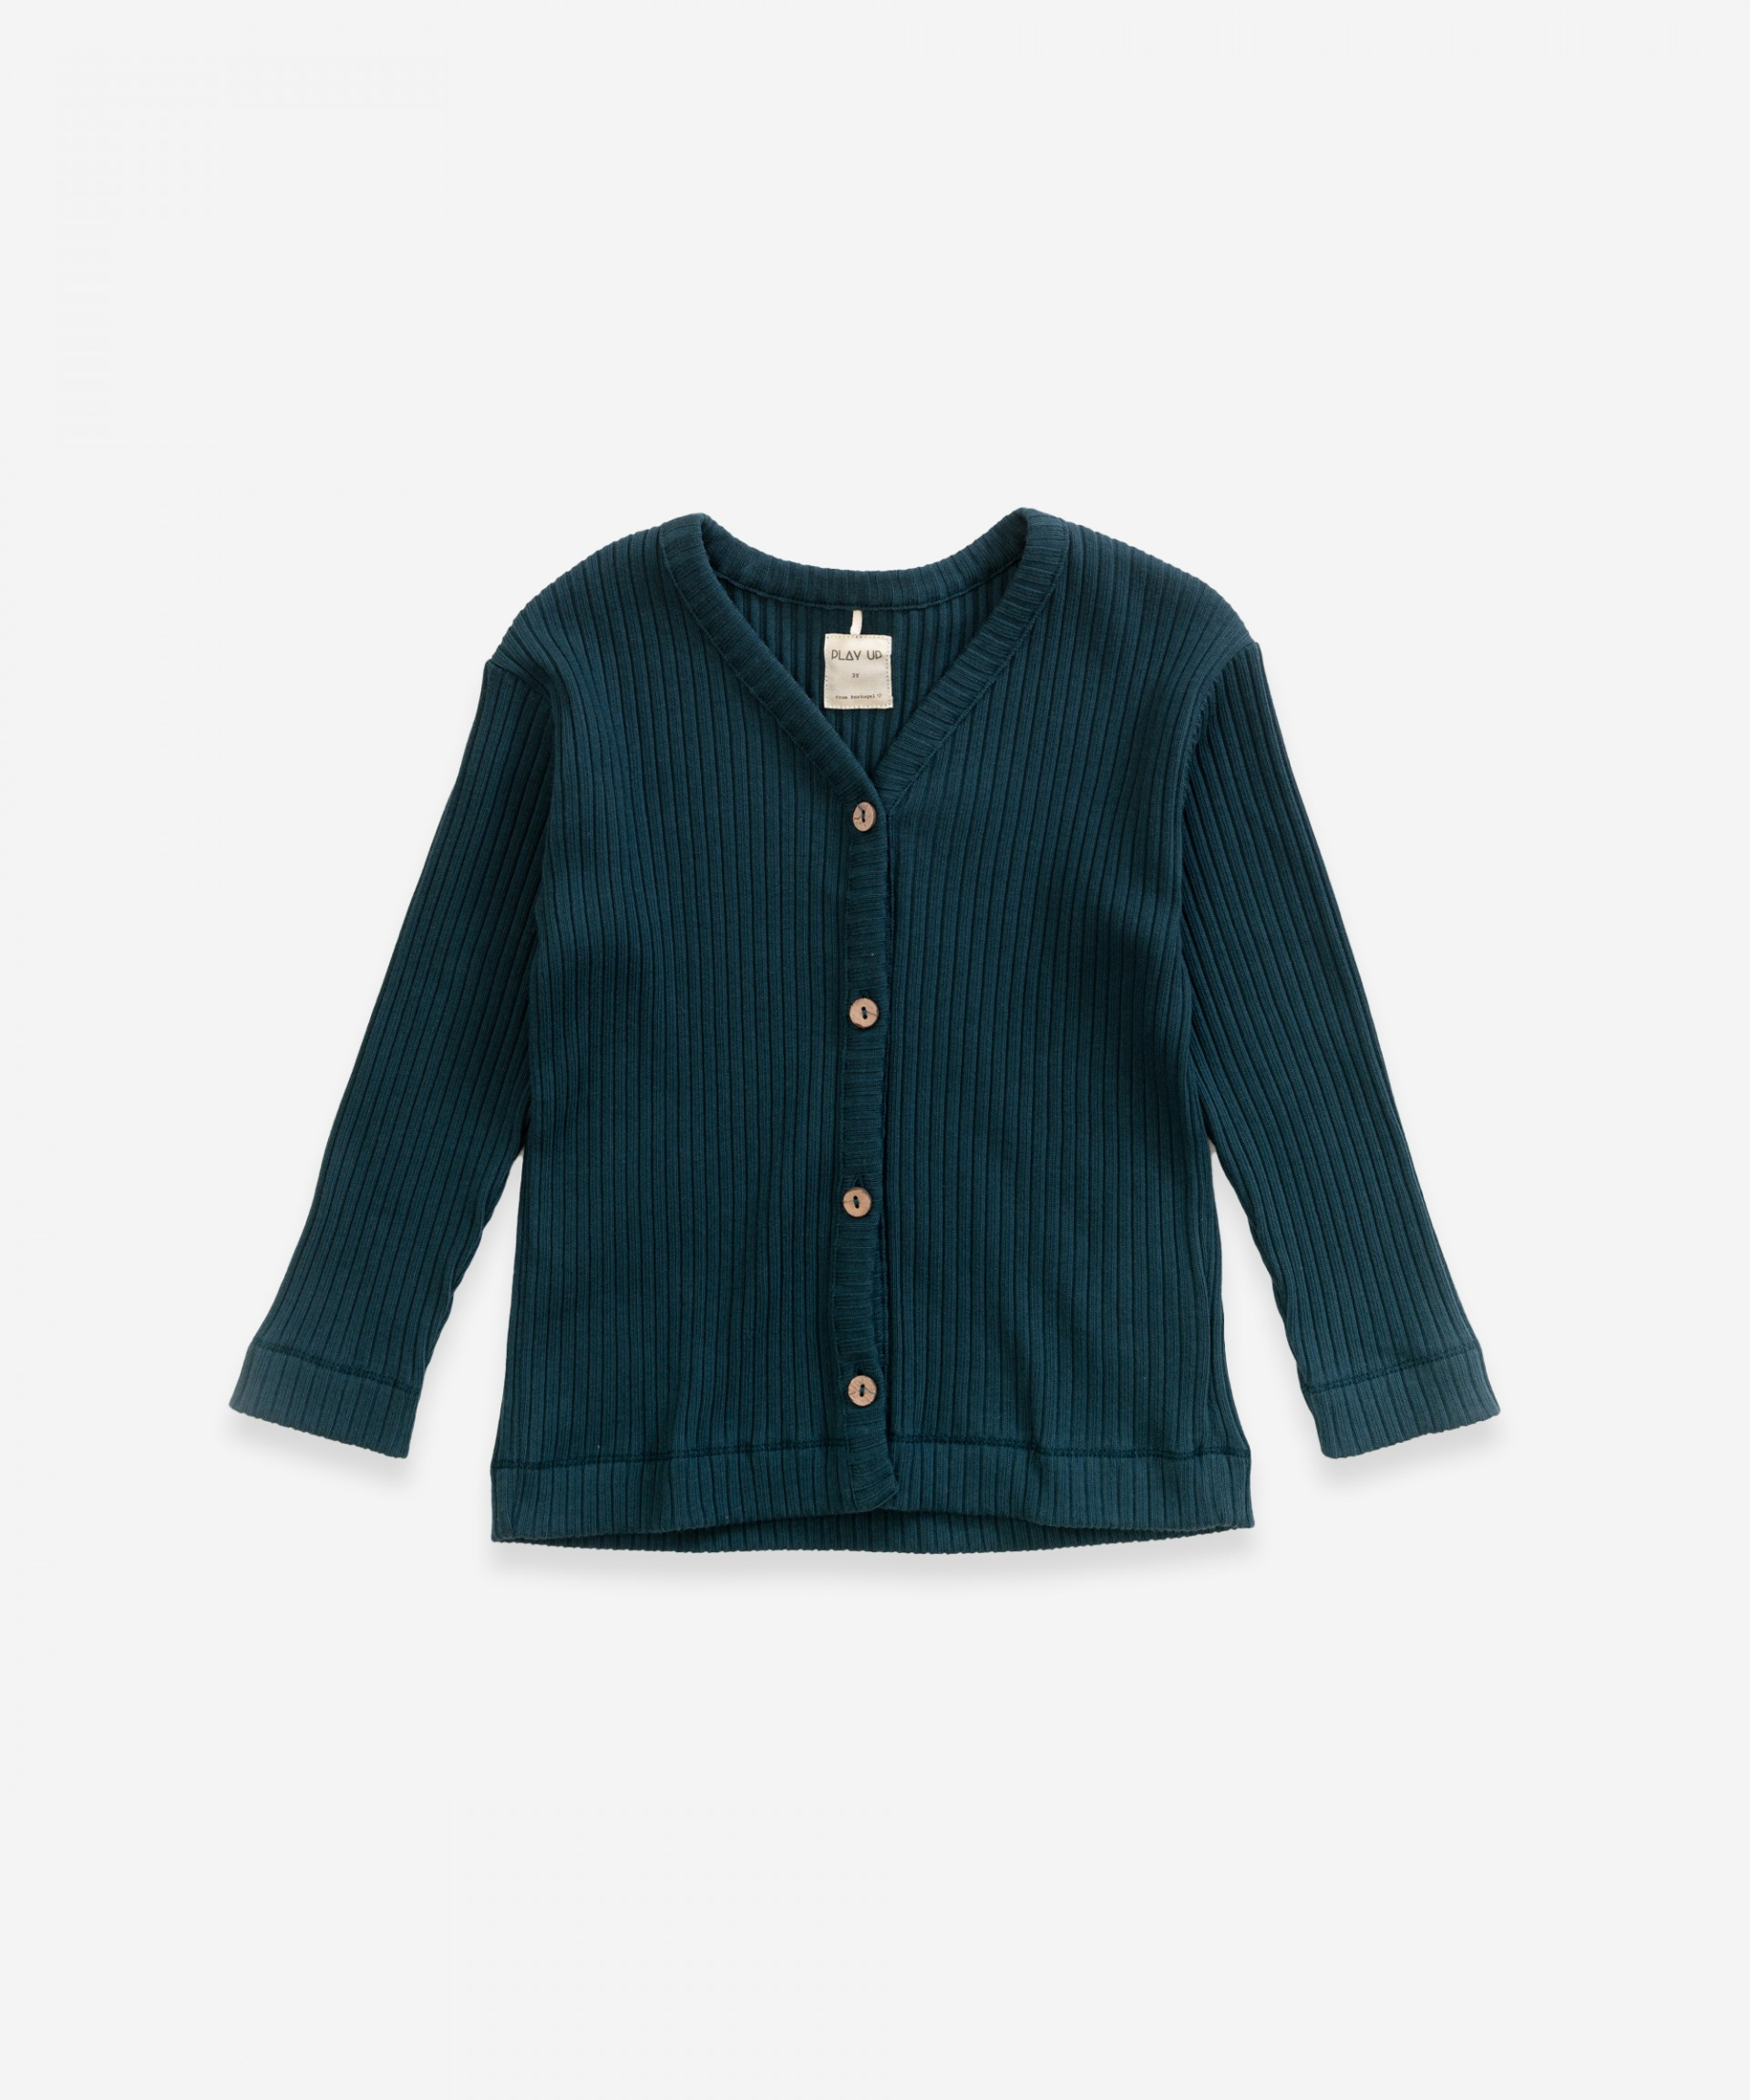 Cardigan | Weaving